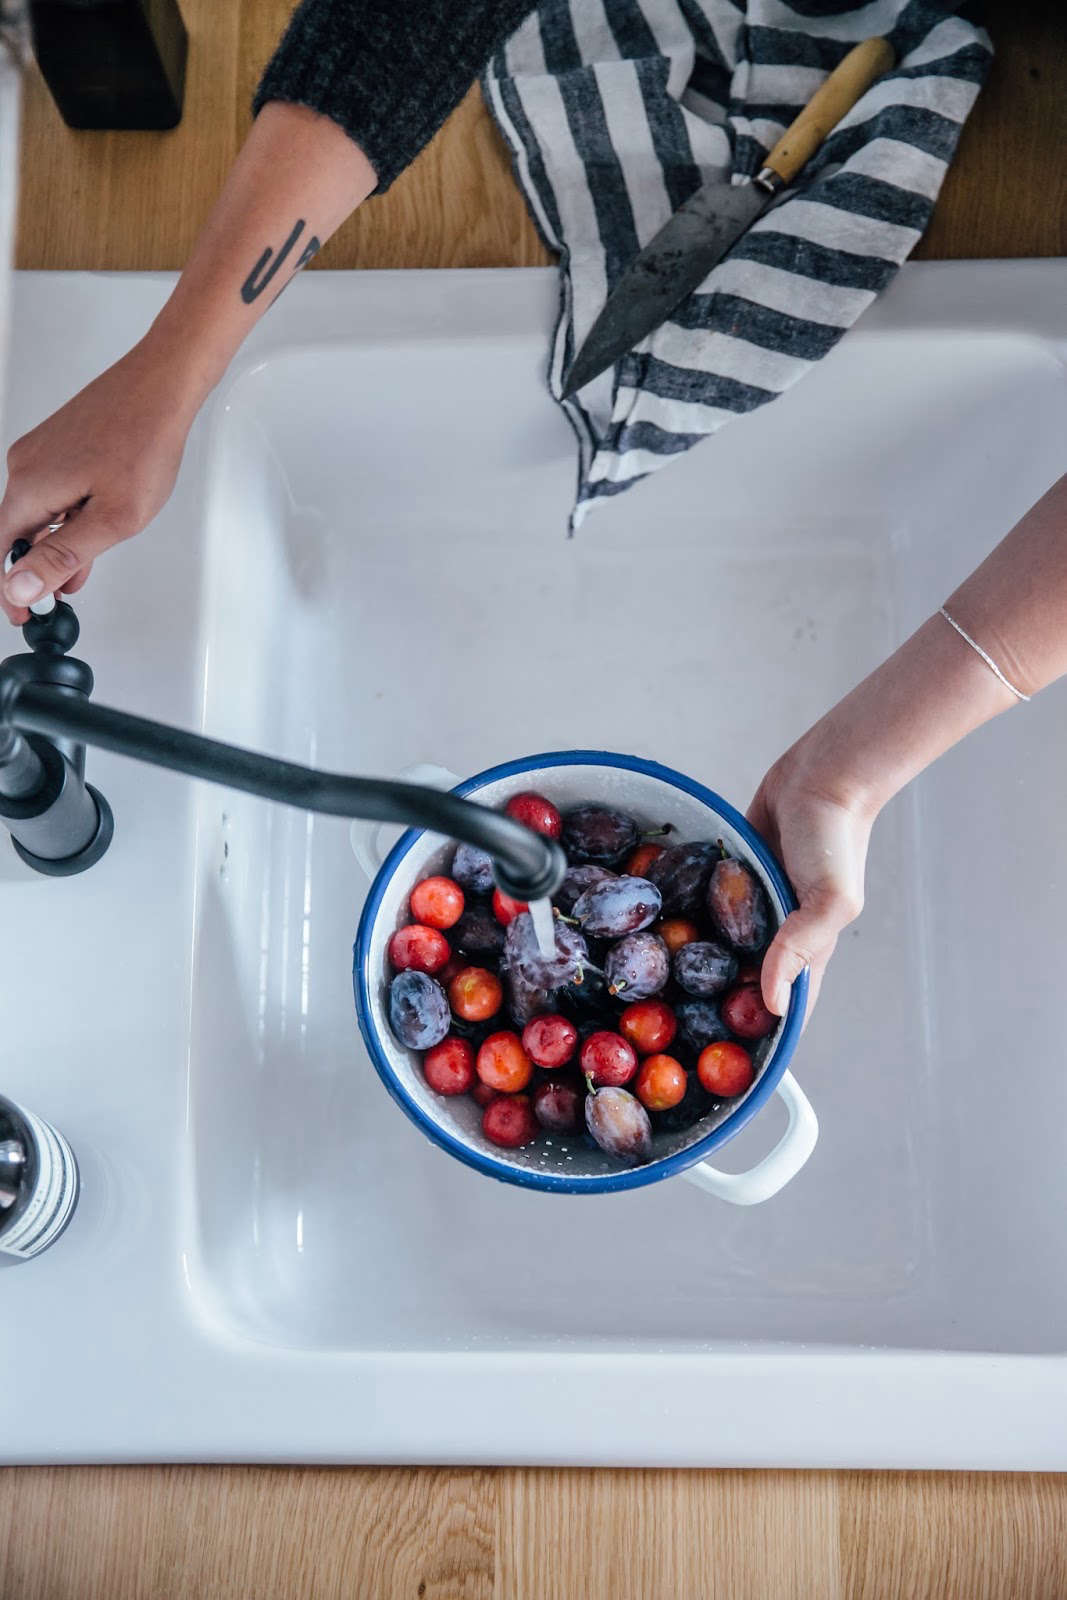 Ikea farmhouse sink photographed by Our Food Stories   Remodelista